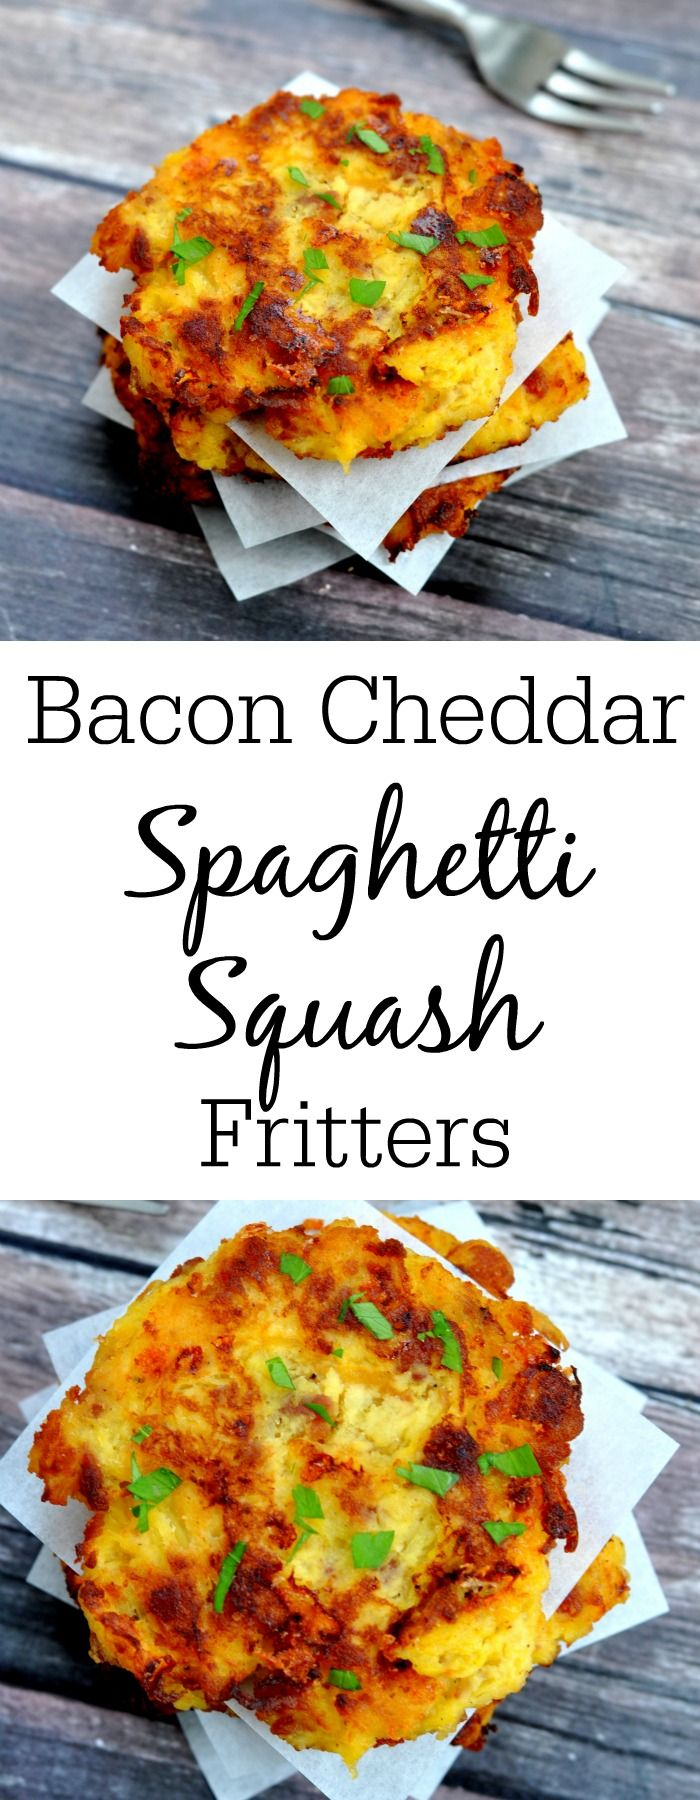 25+ best ideas about Squash fritters on Pinterest | Fried squash ...